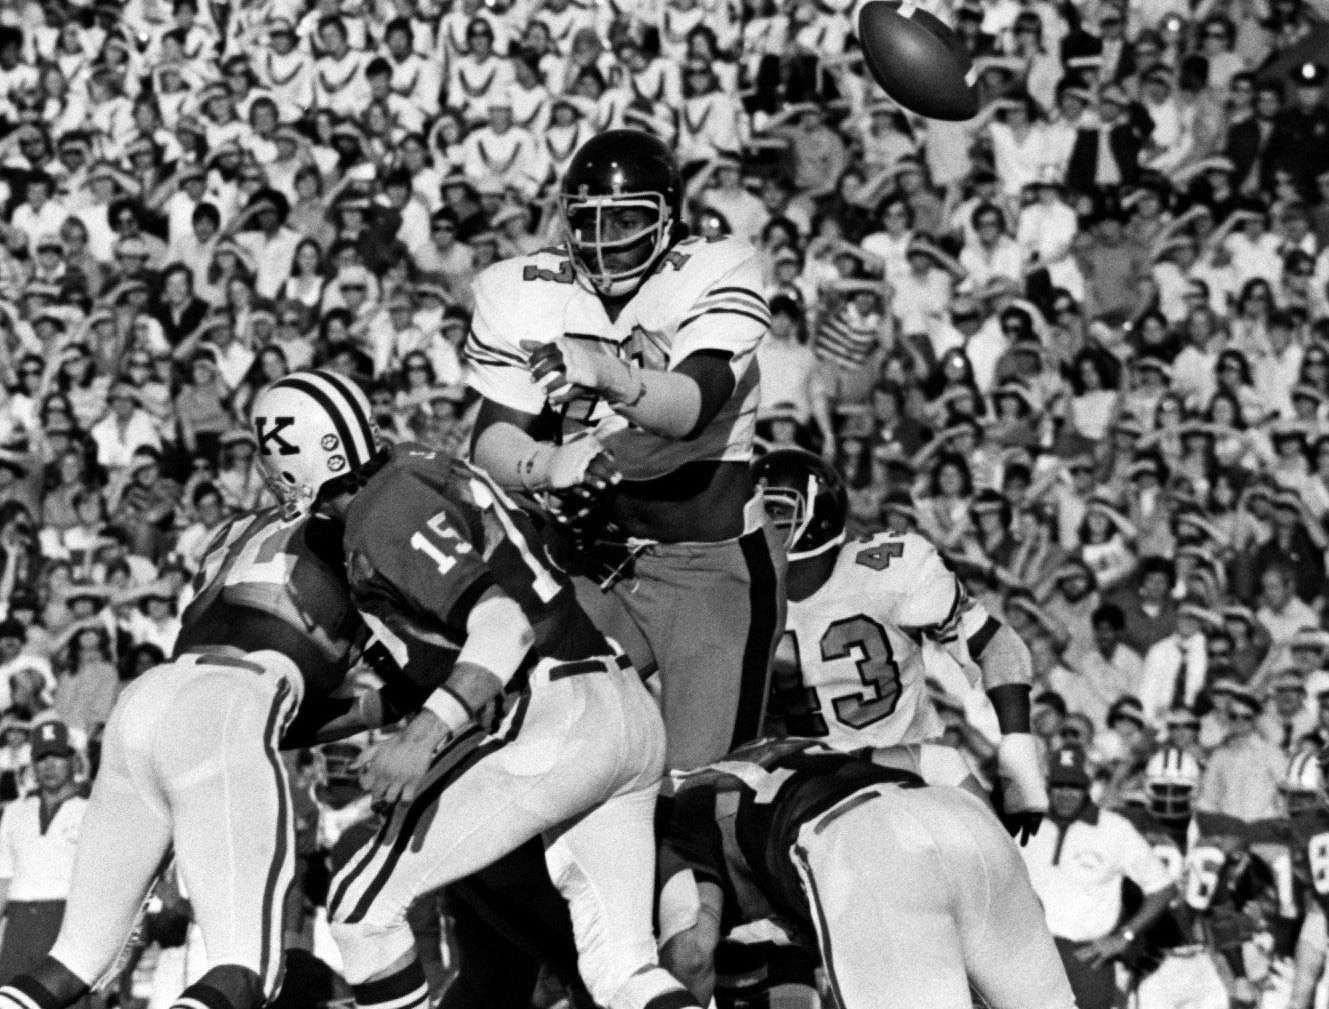 -  -Text: 75VandyvsKentucky12...Vanderbilt defensive tackle (77) Dennis Harrison knocked down the pass from Kentucky quarterback (15) Cliff Hite in its game at Dudley Field. Staff photo by Robert Johnson (The Tennessean) 11/8/1975